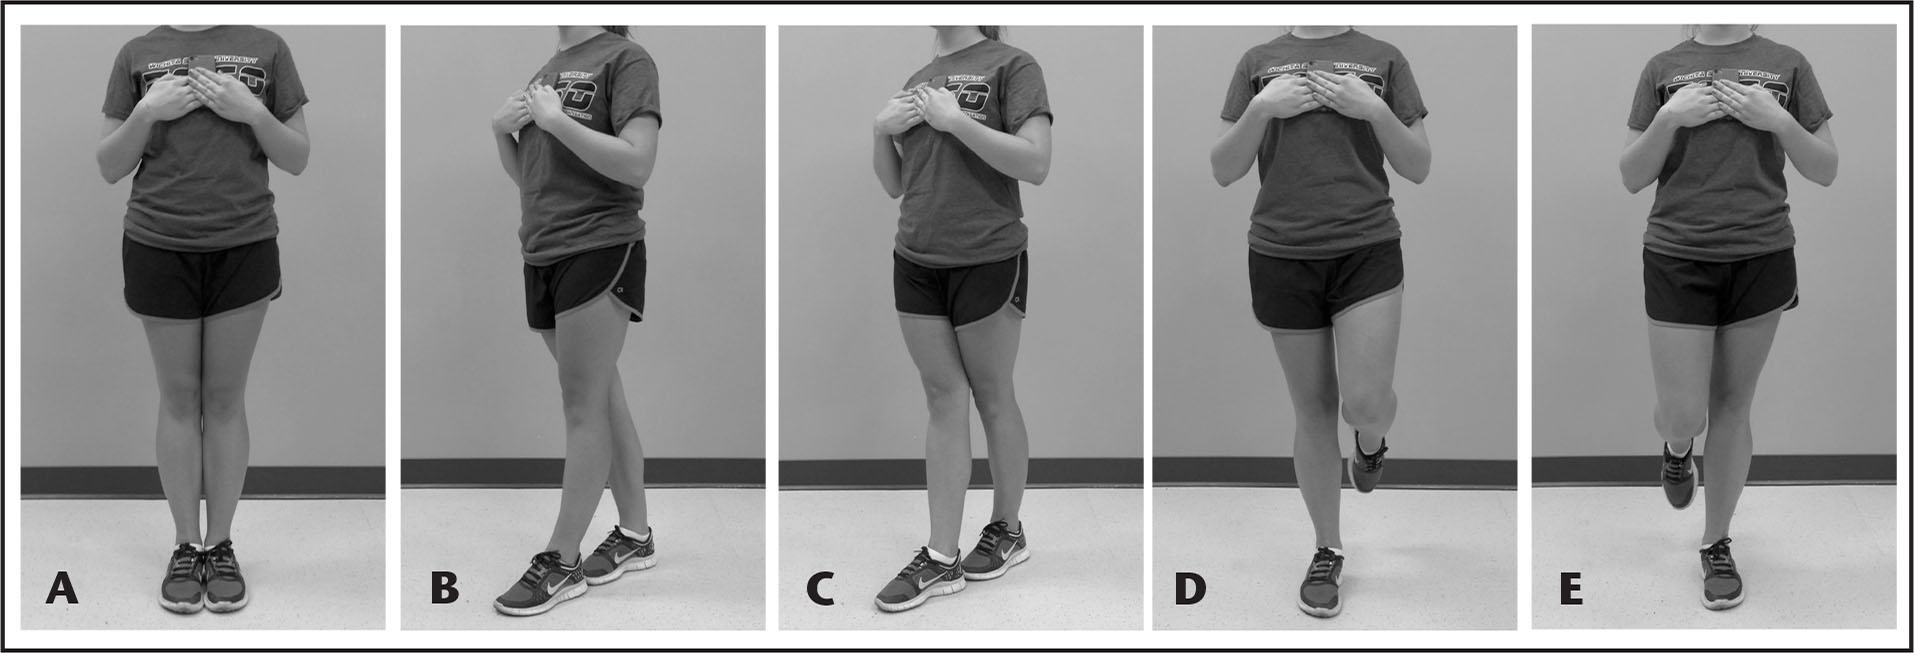 SWAY Balance Mobile Application (SWAY Medical, LLC, Tulsa, OK) balance stances: (A) bipedal stance; (B) tandem stance left foot forward; (C) tandem stance right foot forward; (D) single leg stance right leg; (E) single leg stance left leg.